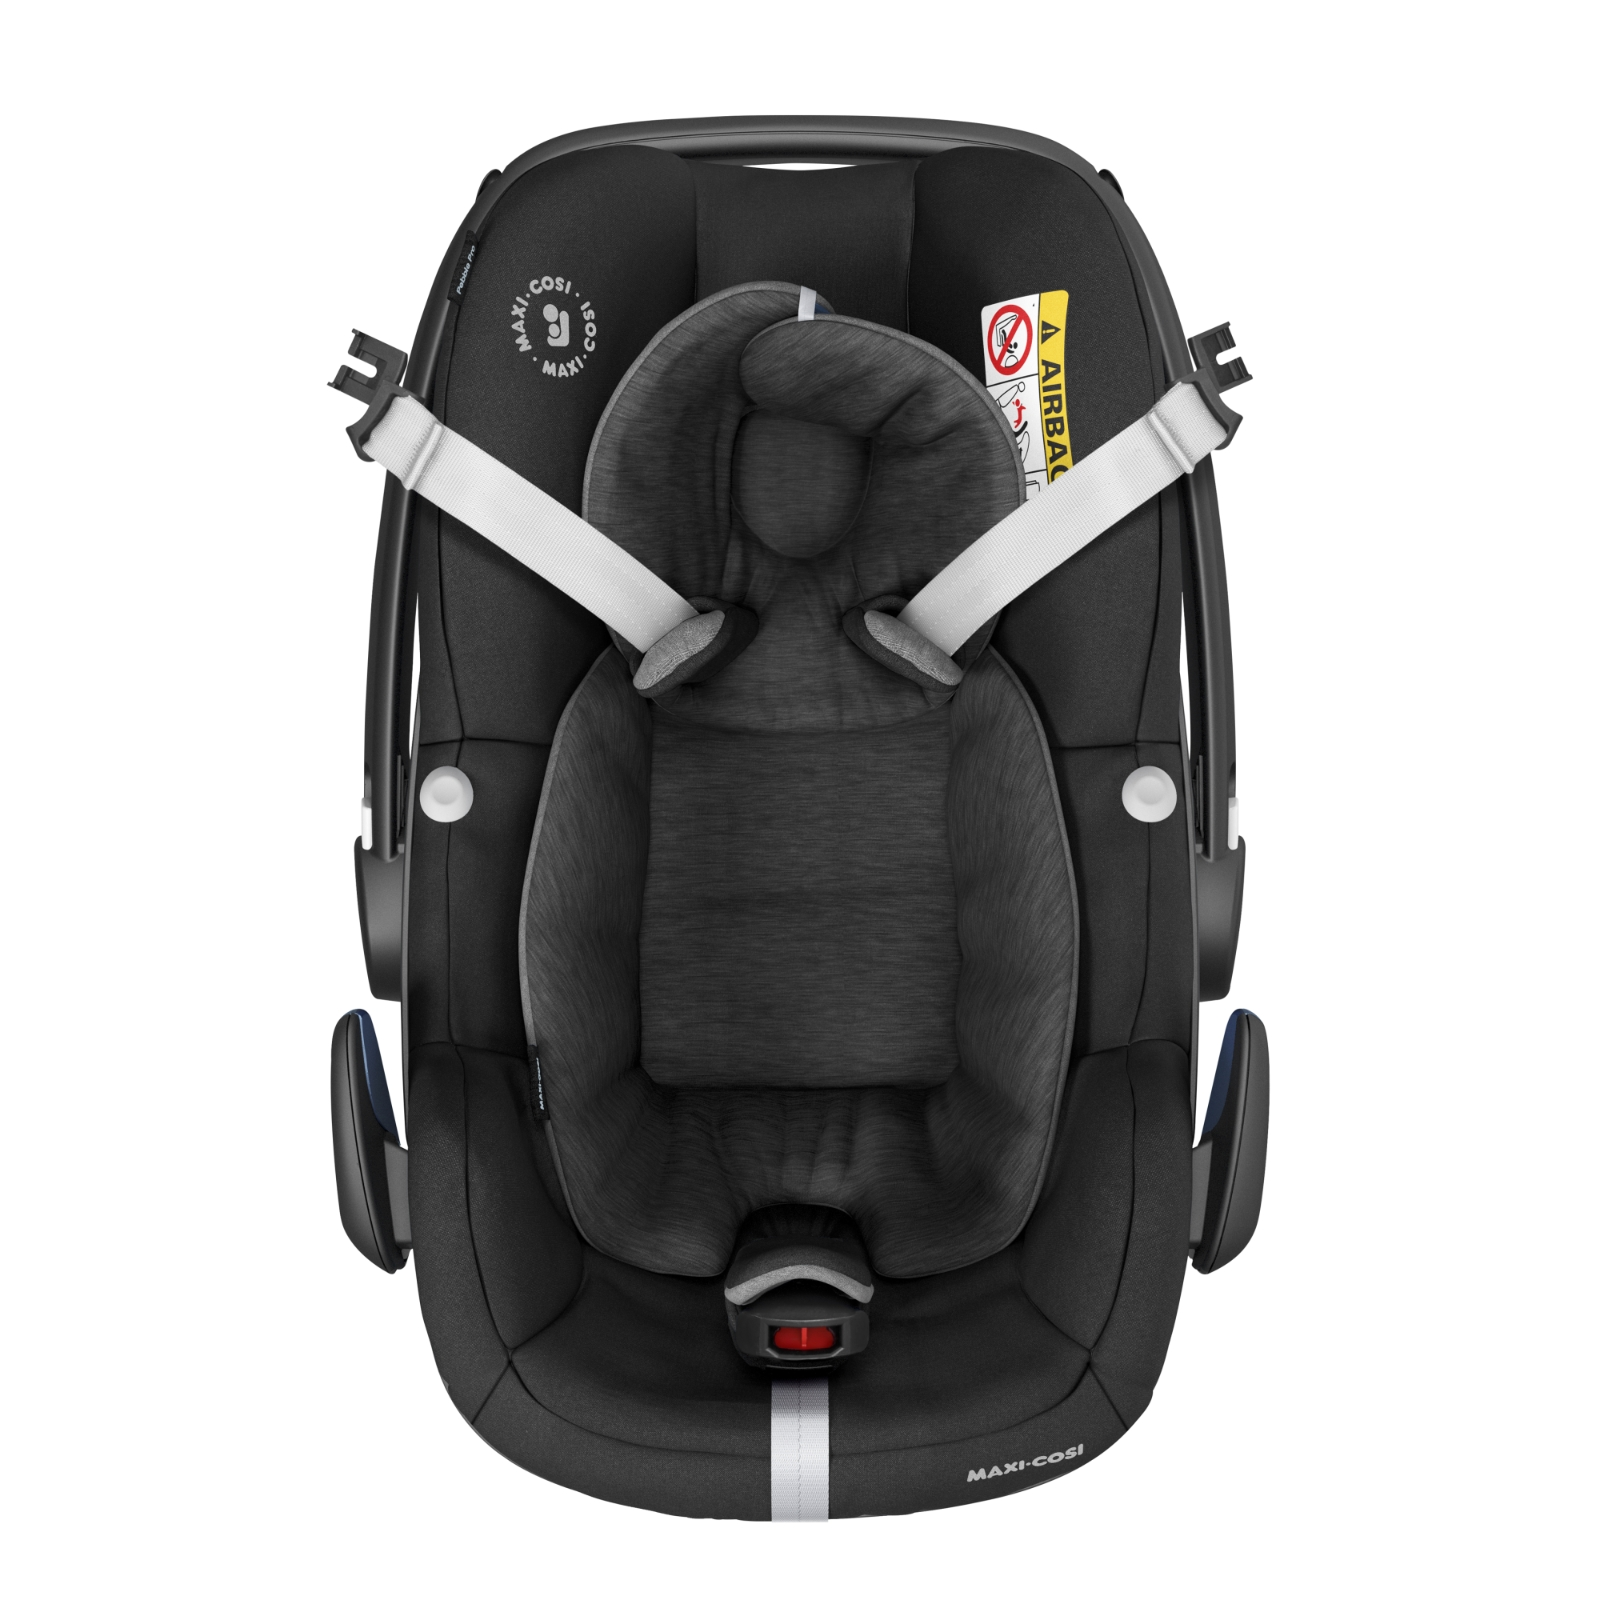 Maxi Cosi Car Seat Ece R129 Maxi Cosi Pebble Pro Essential Black £199 00 Baby